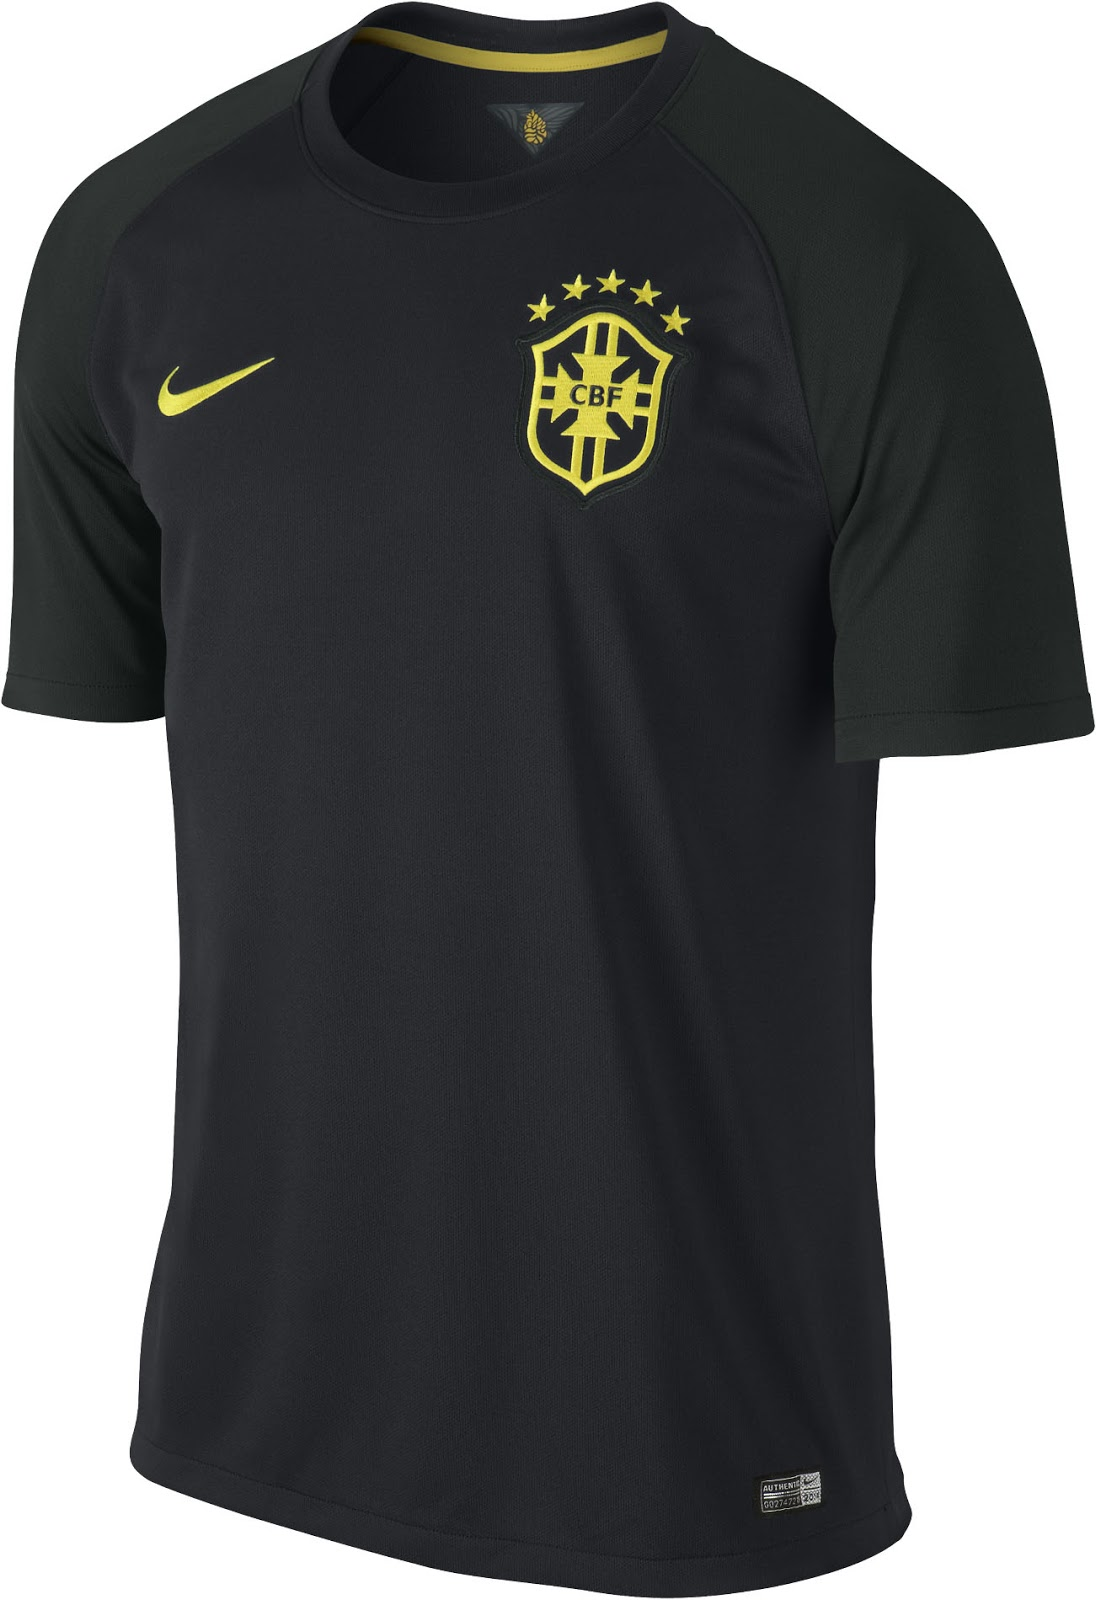 Brazil-2014-NIKE-new-third-kit-4.jpg